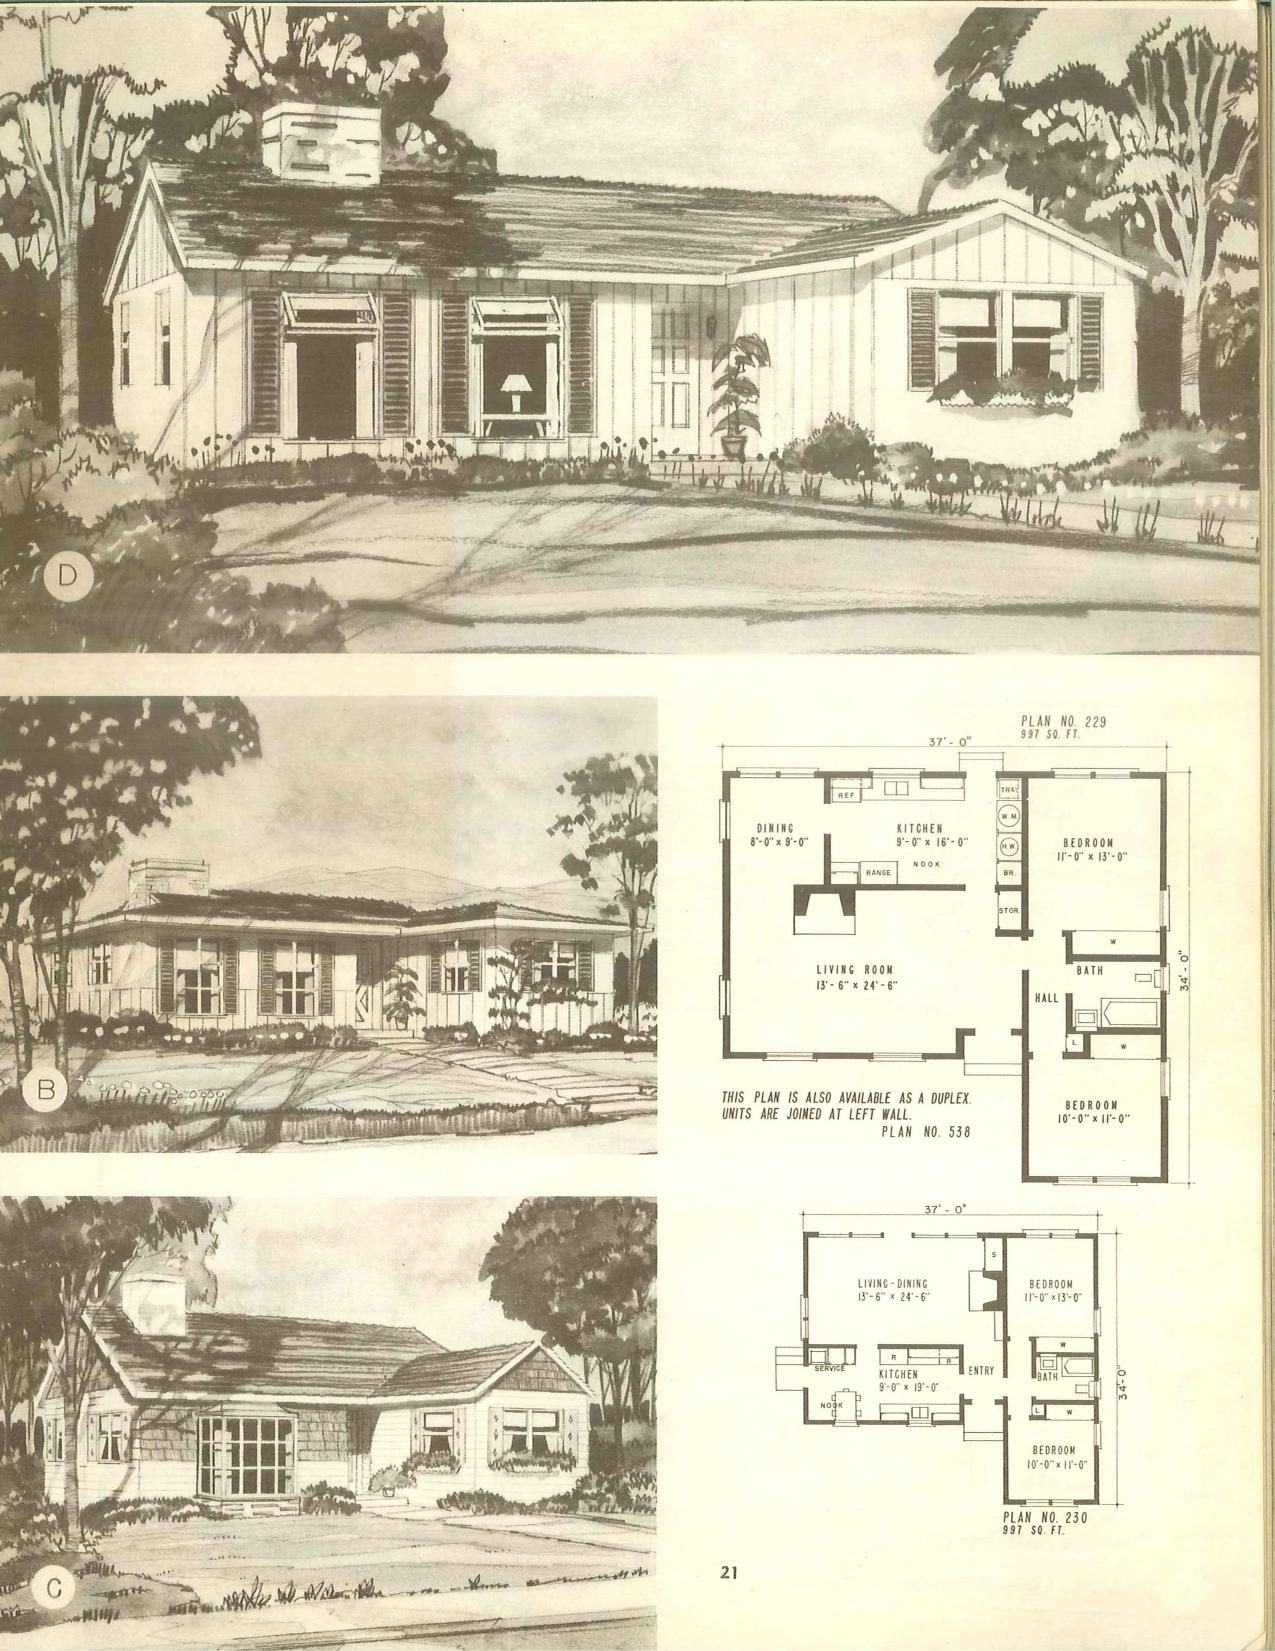 Harmonious Homes Estes Hiawatha T Free Download Borrow And Streaming Internet Archive Vintage House Plans Ranch House Plans House Floor Plans